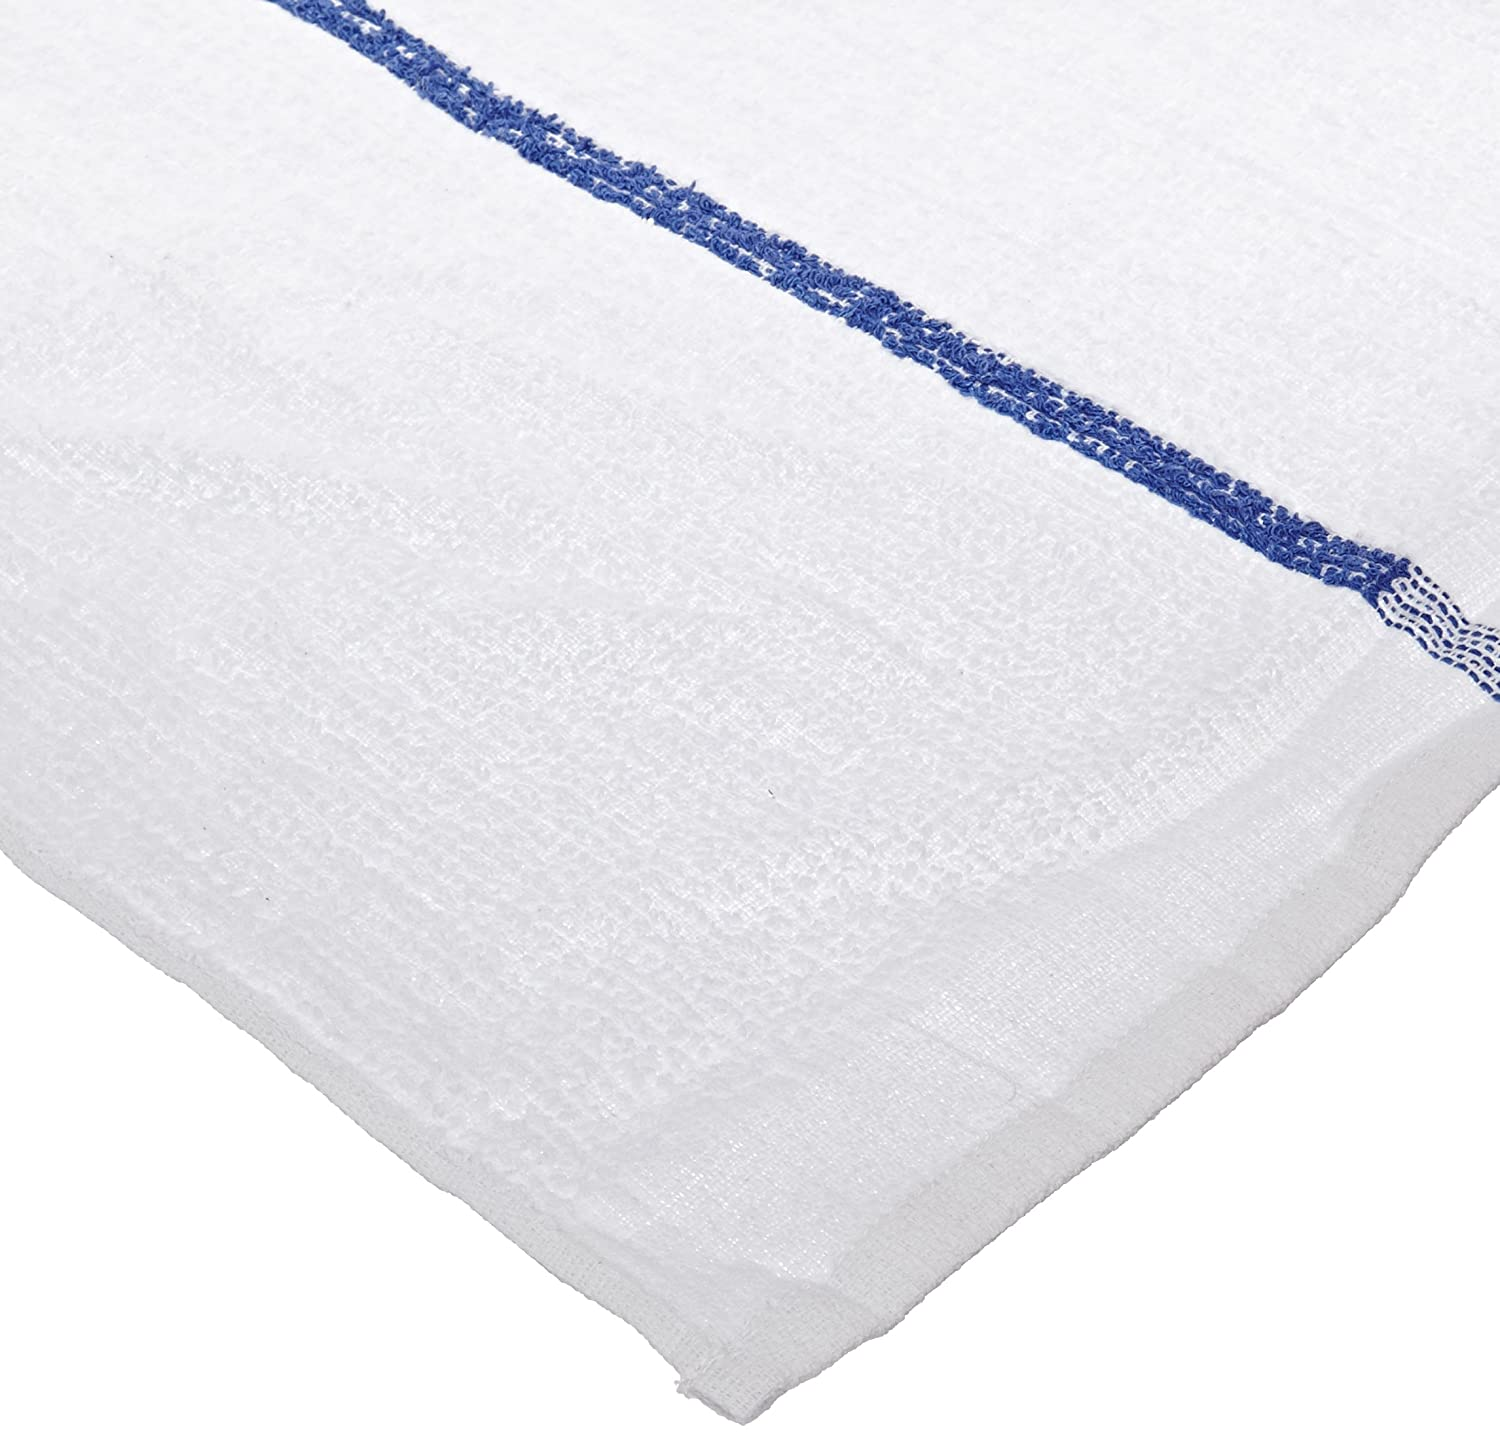 Chef Revival 700BRT Cotton Blue Striped Bar Towel White 19 by 16-Inch Pack of 12